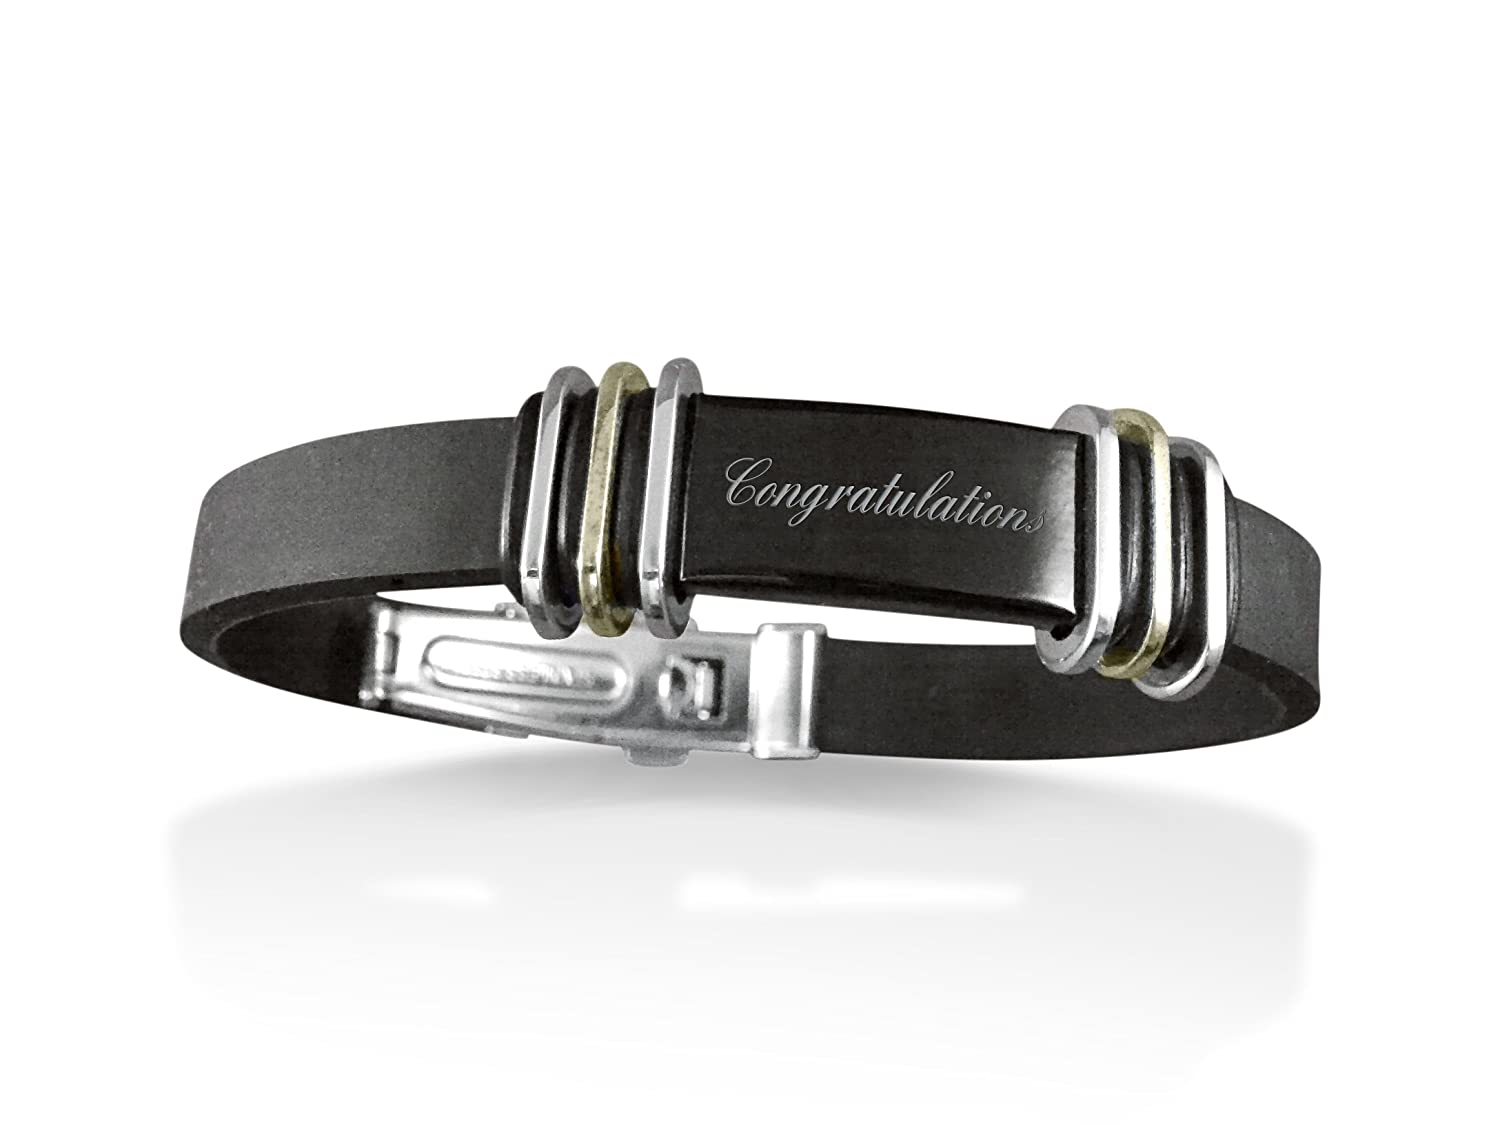 Luxury Engraved Gifts UK Mens Congratulations Rubber /& Steel Identity Id Bangle Bracelet BR50